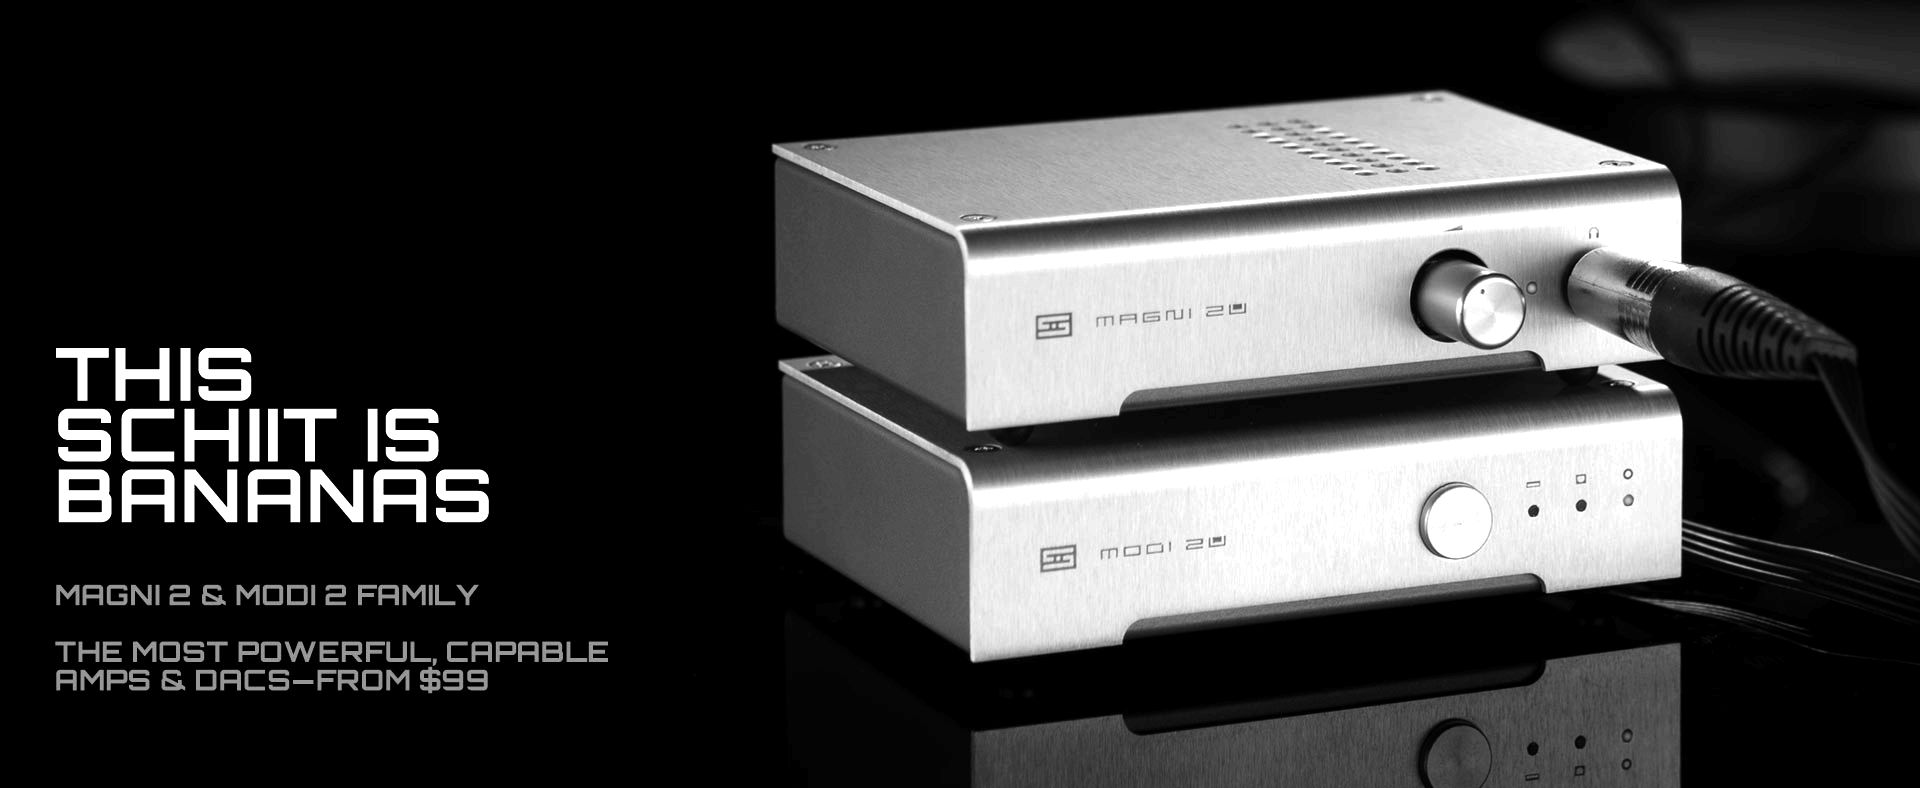 Schiit audio, headphone amps and dacs produced in usa. We most likely